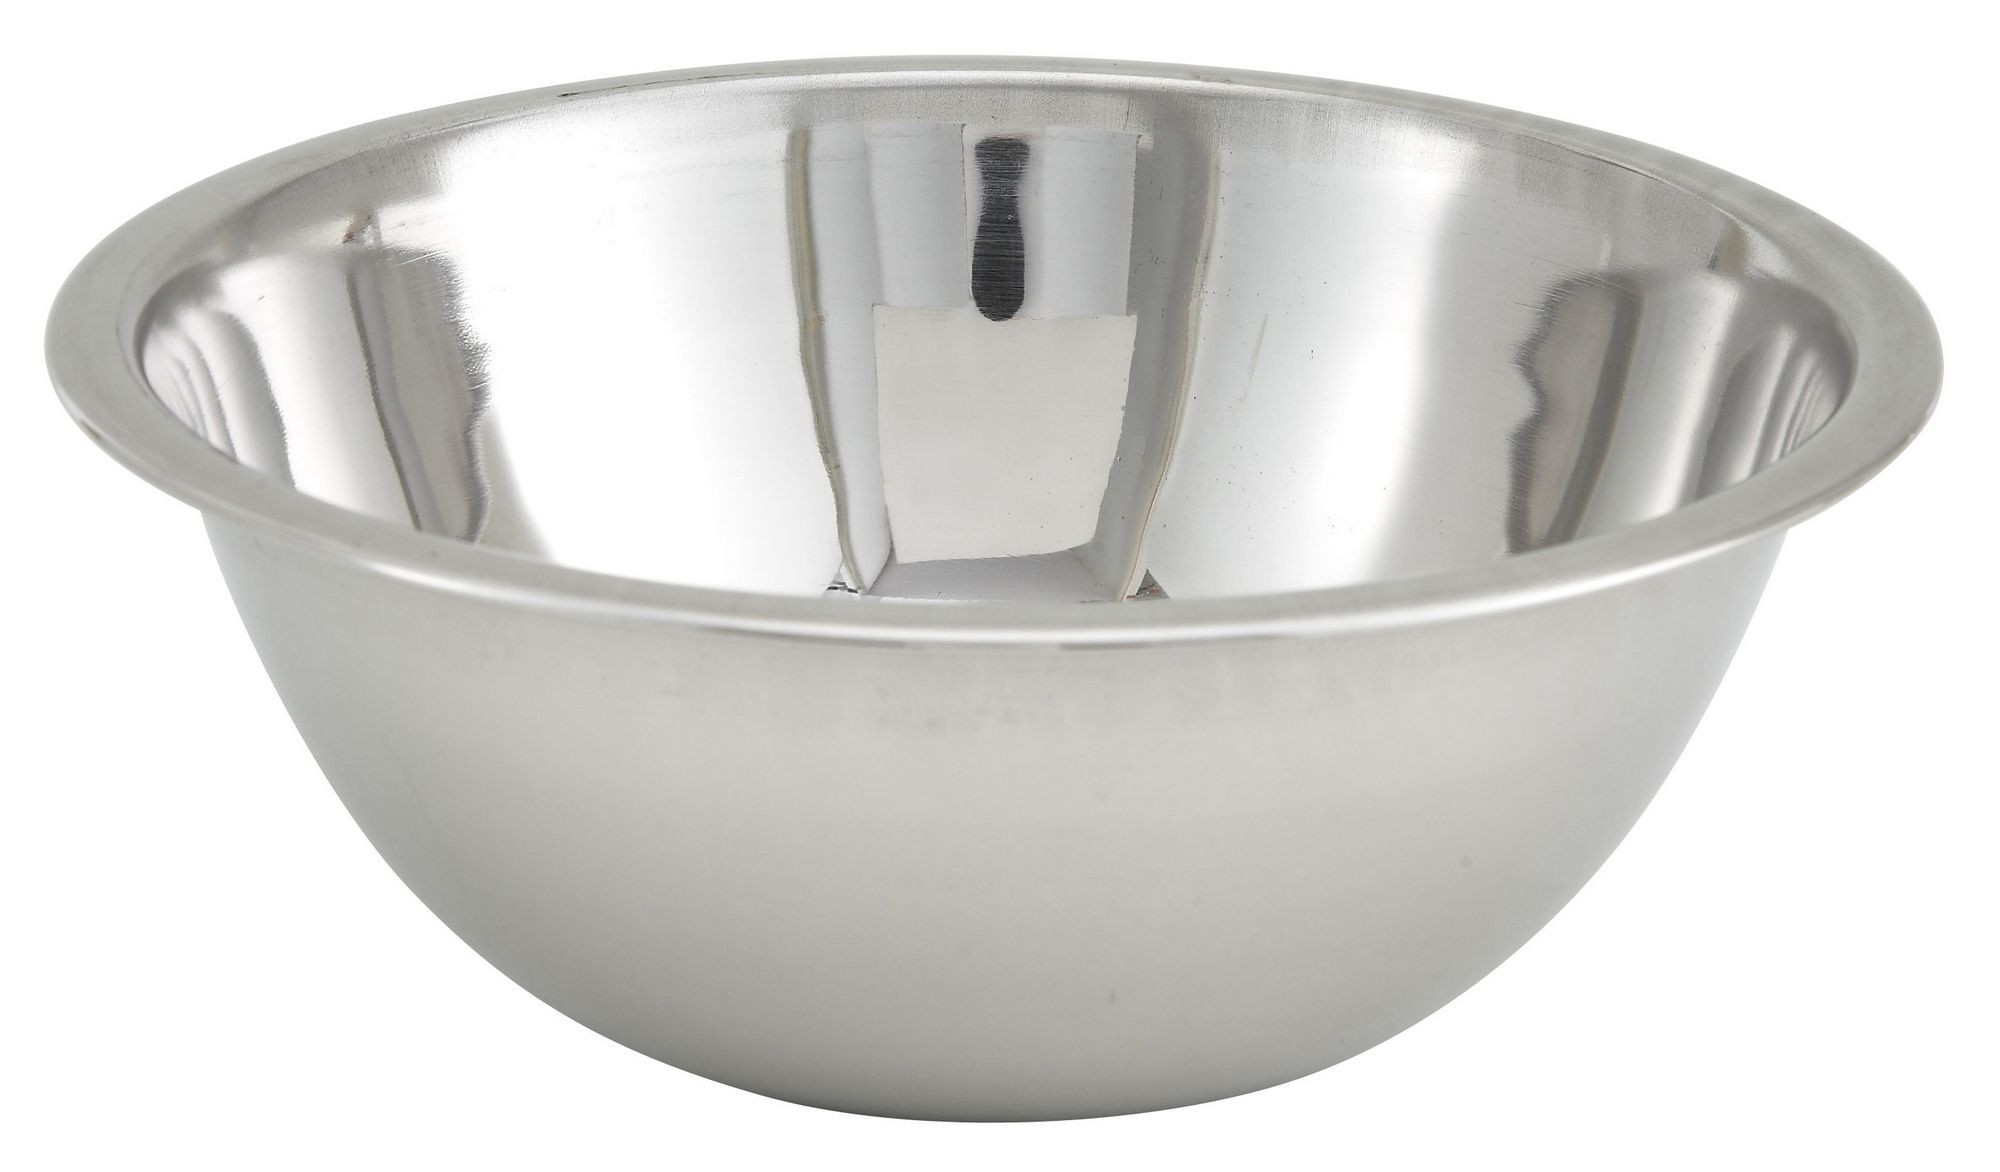 Winco mxb-400q Stainless Steel 4 Qt. Mixing Bowl